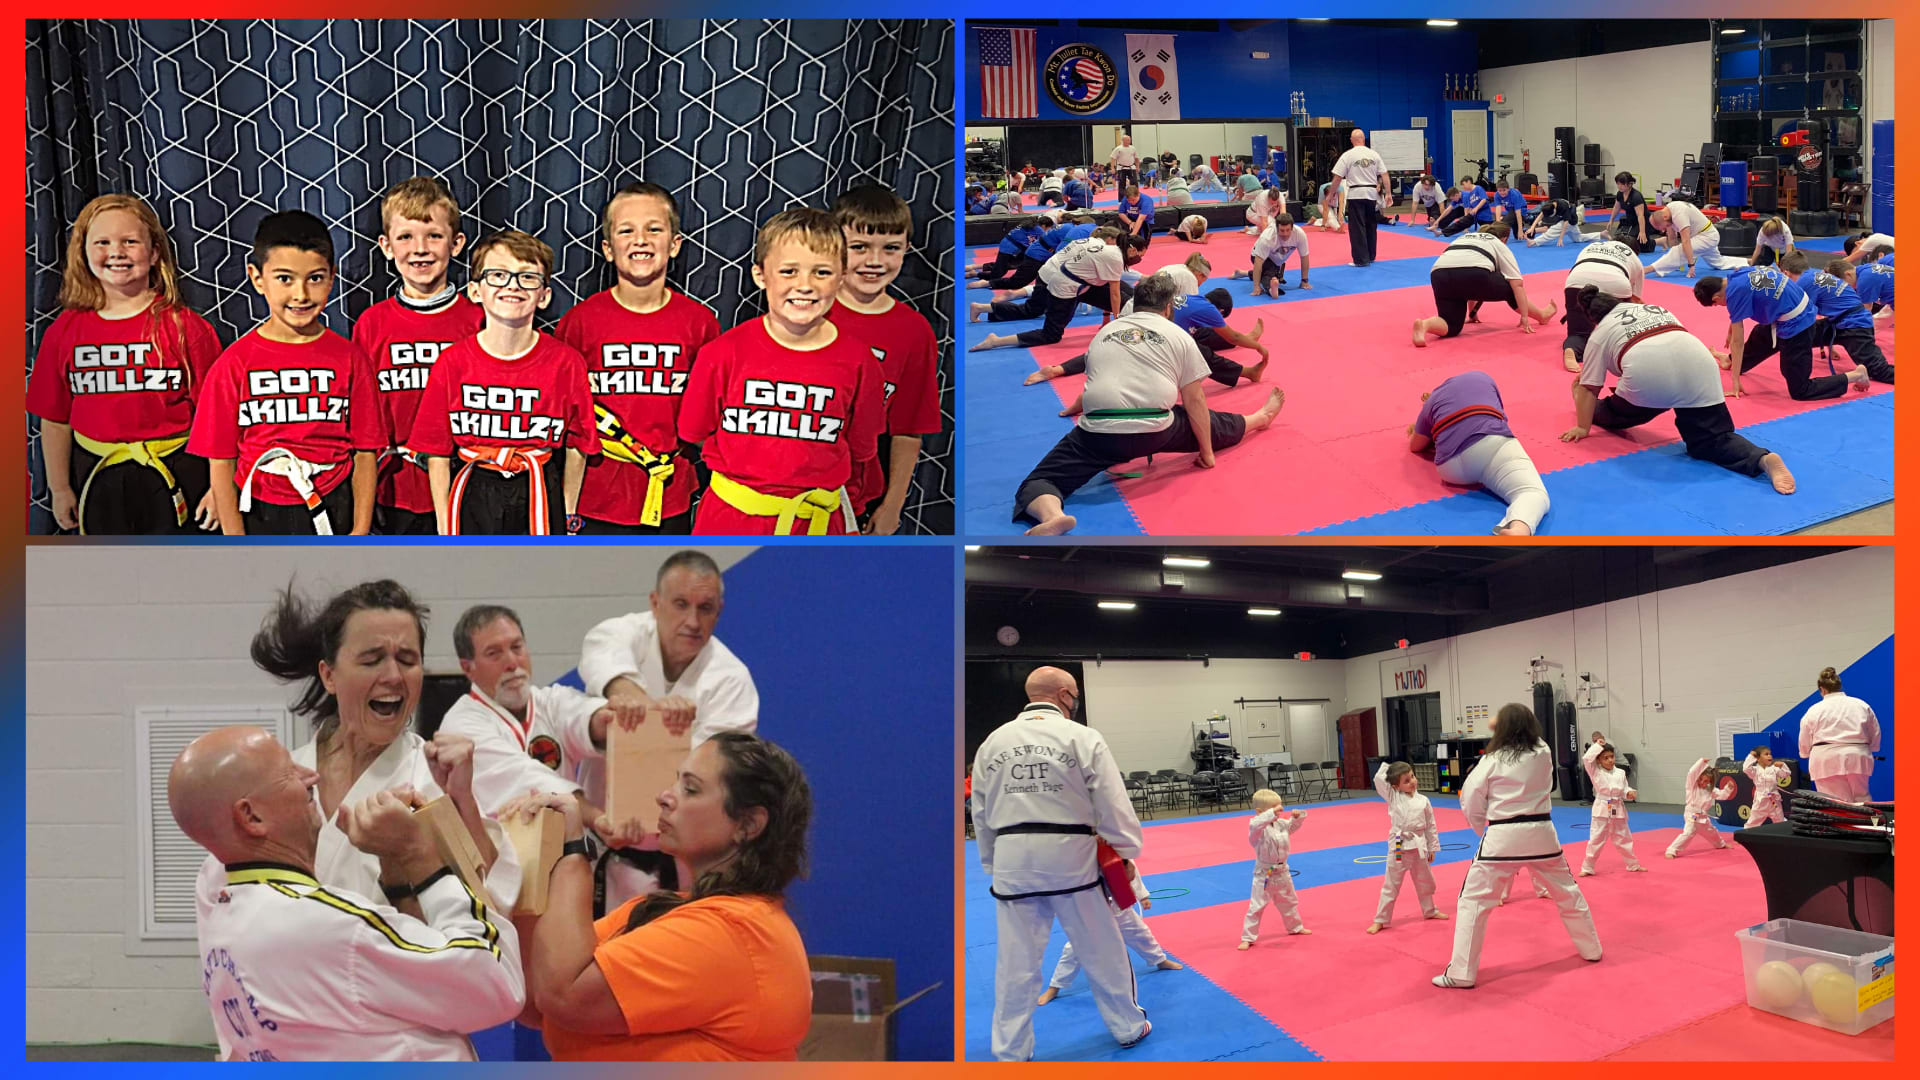 <style> h1 {   text-shadow: 2px 2px 8px #1e2a55; } </style>Mt. Juliet's #1 Martial Arts Training Center And The Best After School and Camp Programs